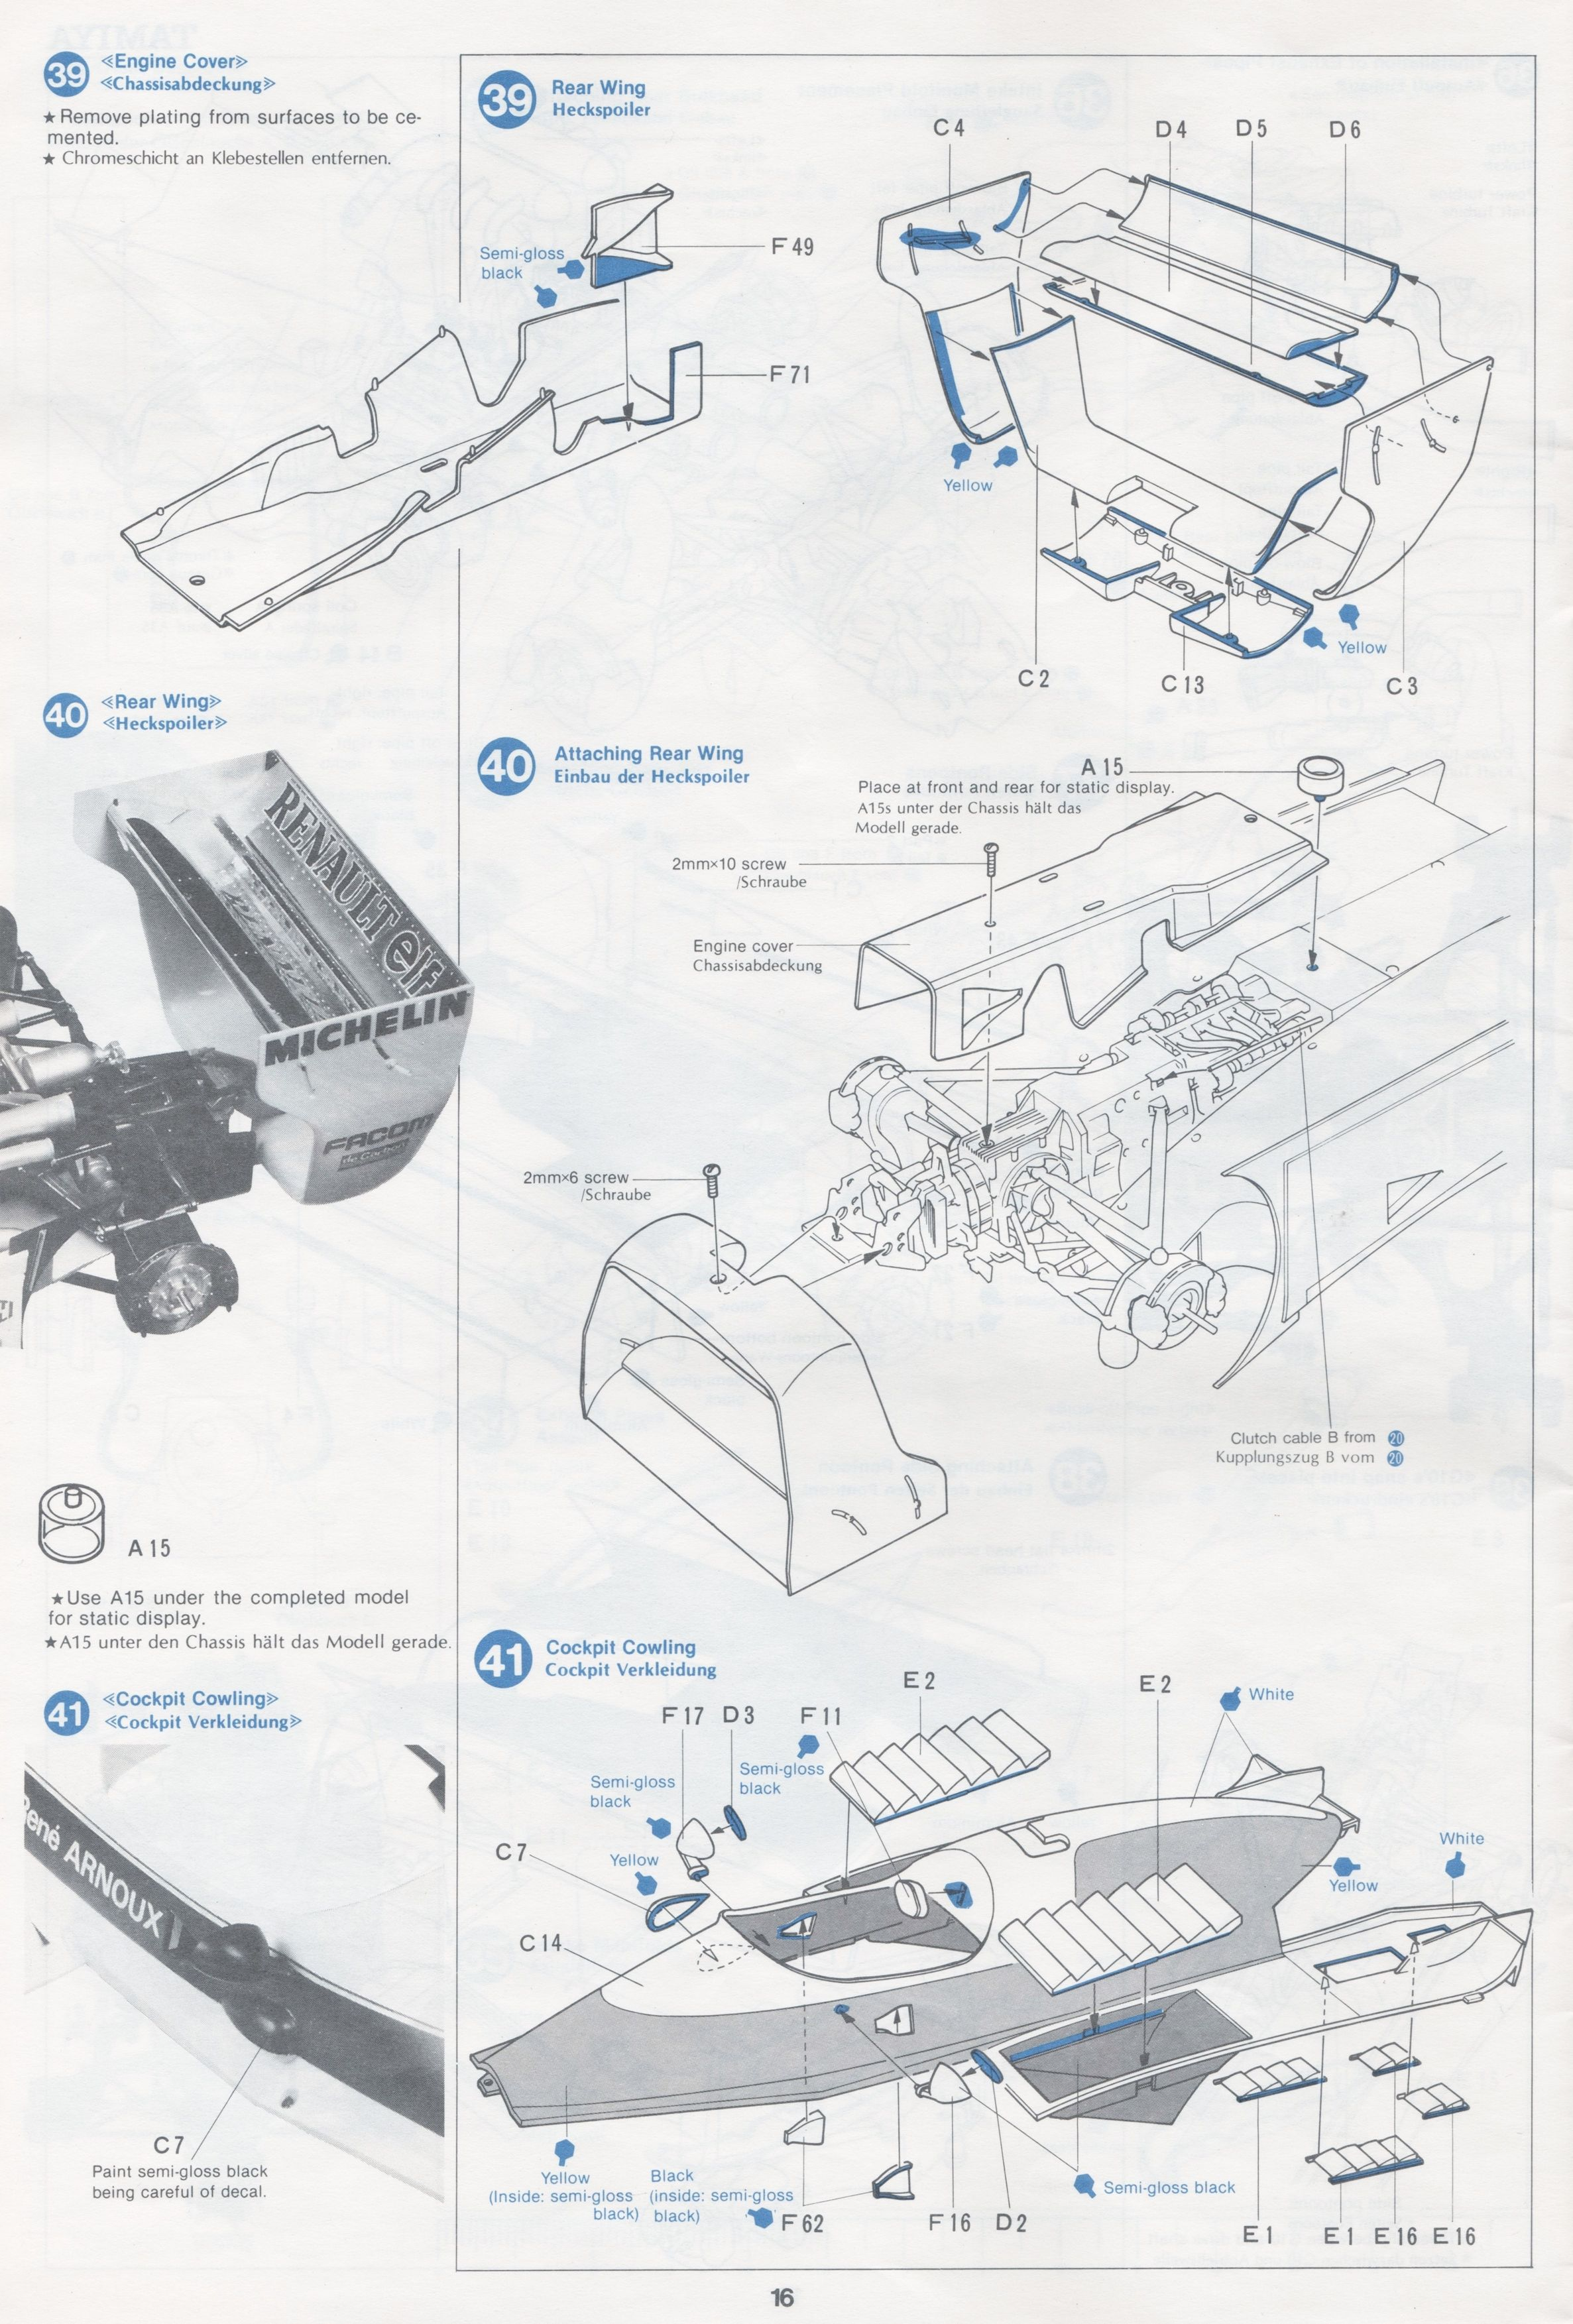 Pin By Gluefinger On Tamiya 1 12 Renault Re20 Pinterest Engine Diagrams Irene Architecture Concept Diagram Presentation Board Architectural Models Drawing